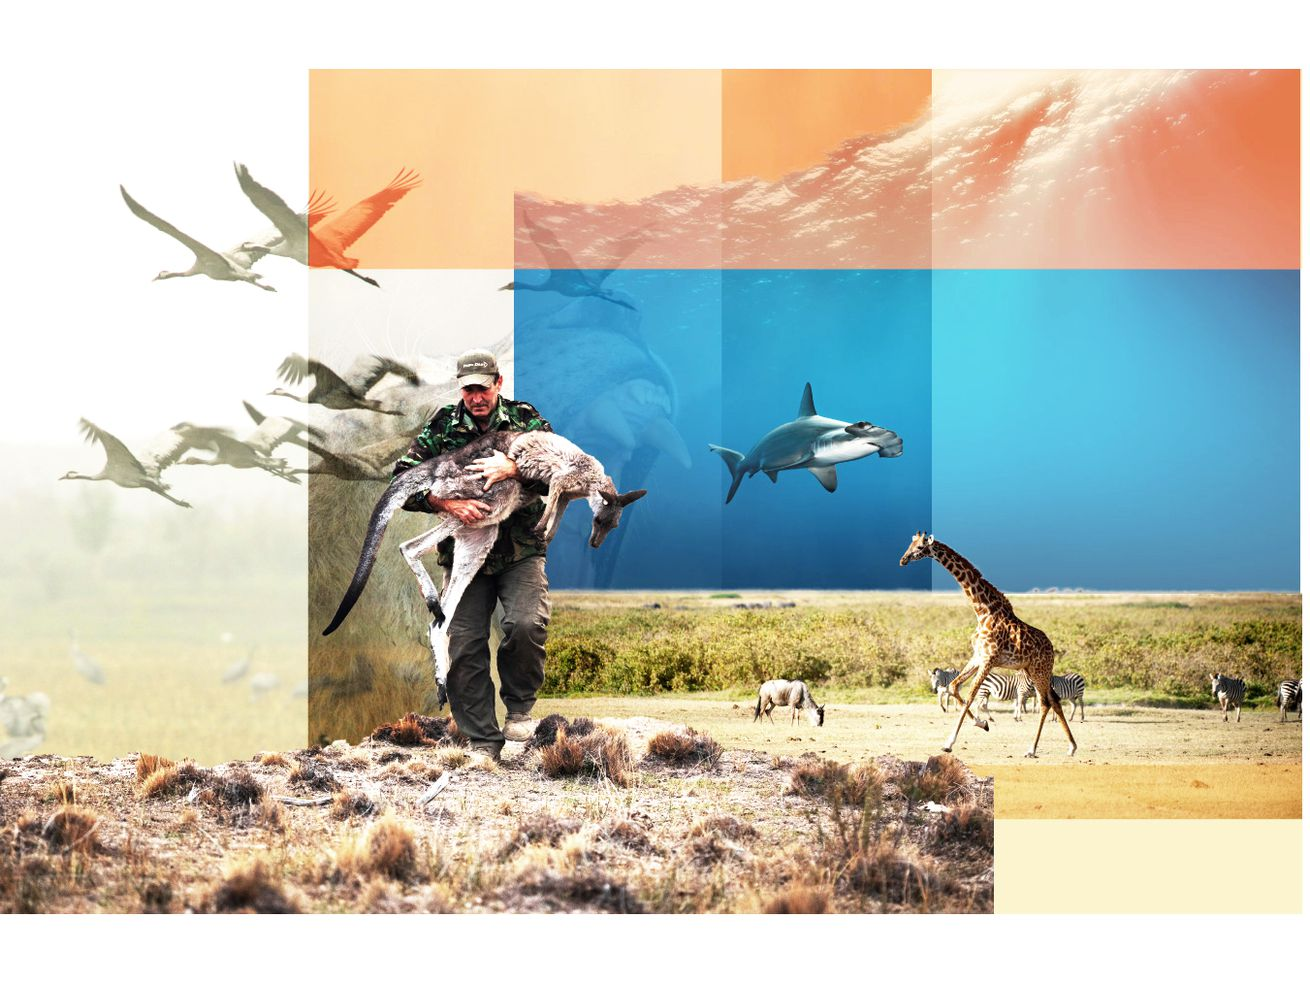 Photo illustration collage of wildlife surrounding a person carrying an injured animal.